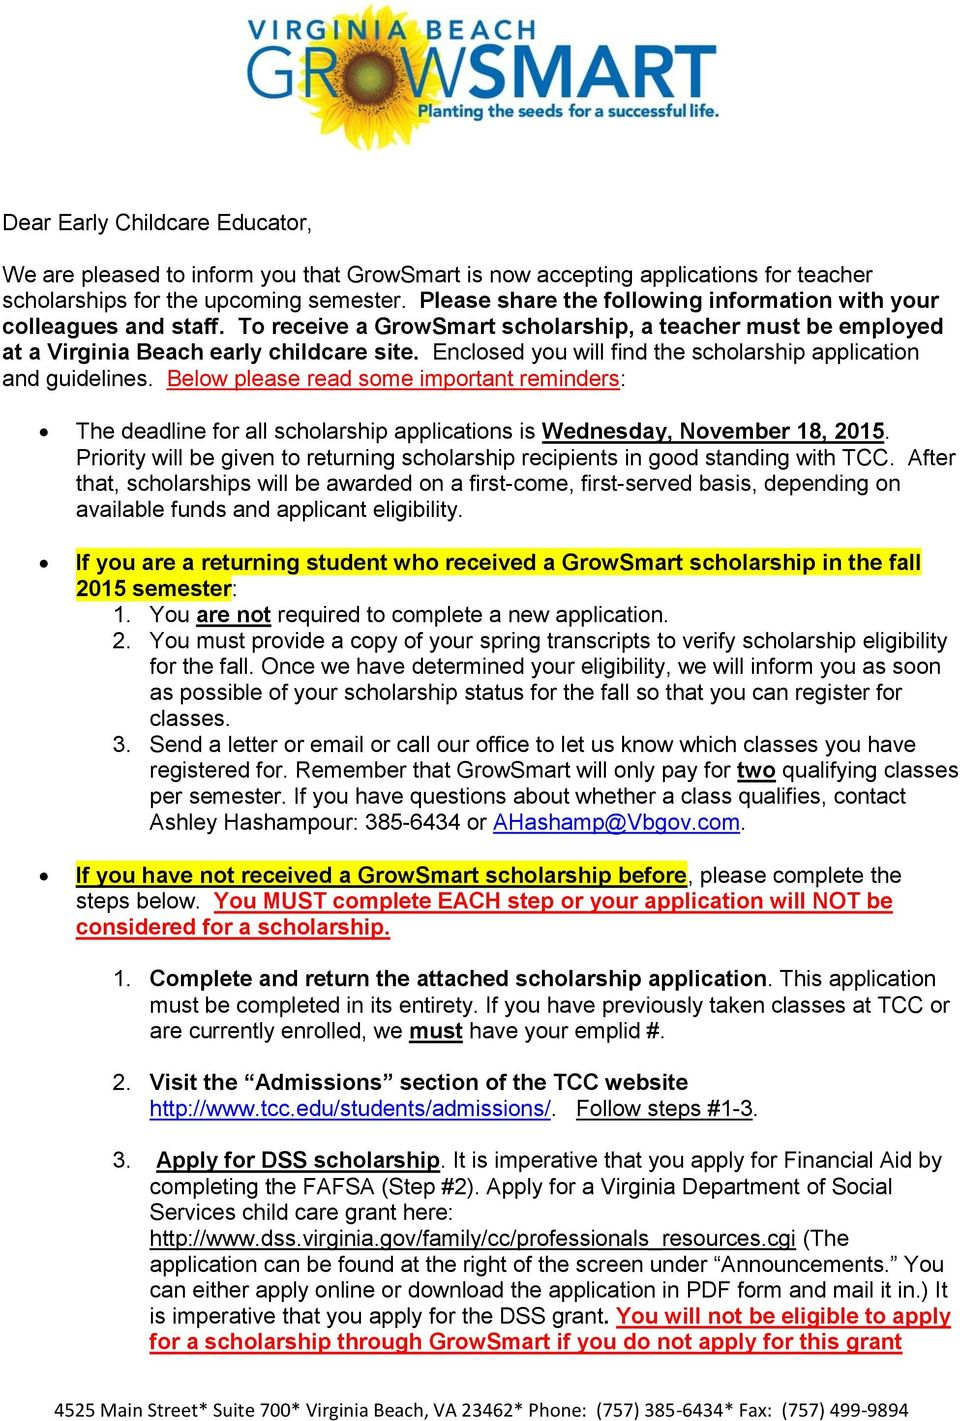 Enclsed yu will find the schlarship applicatin and guidelines. Belw please read sme imprtant reminders: The deadline fr all schlarship applicatins is Wednesday, Nvember 18, 2015.